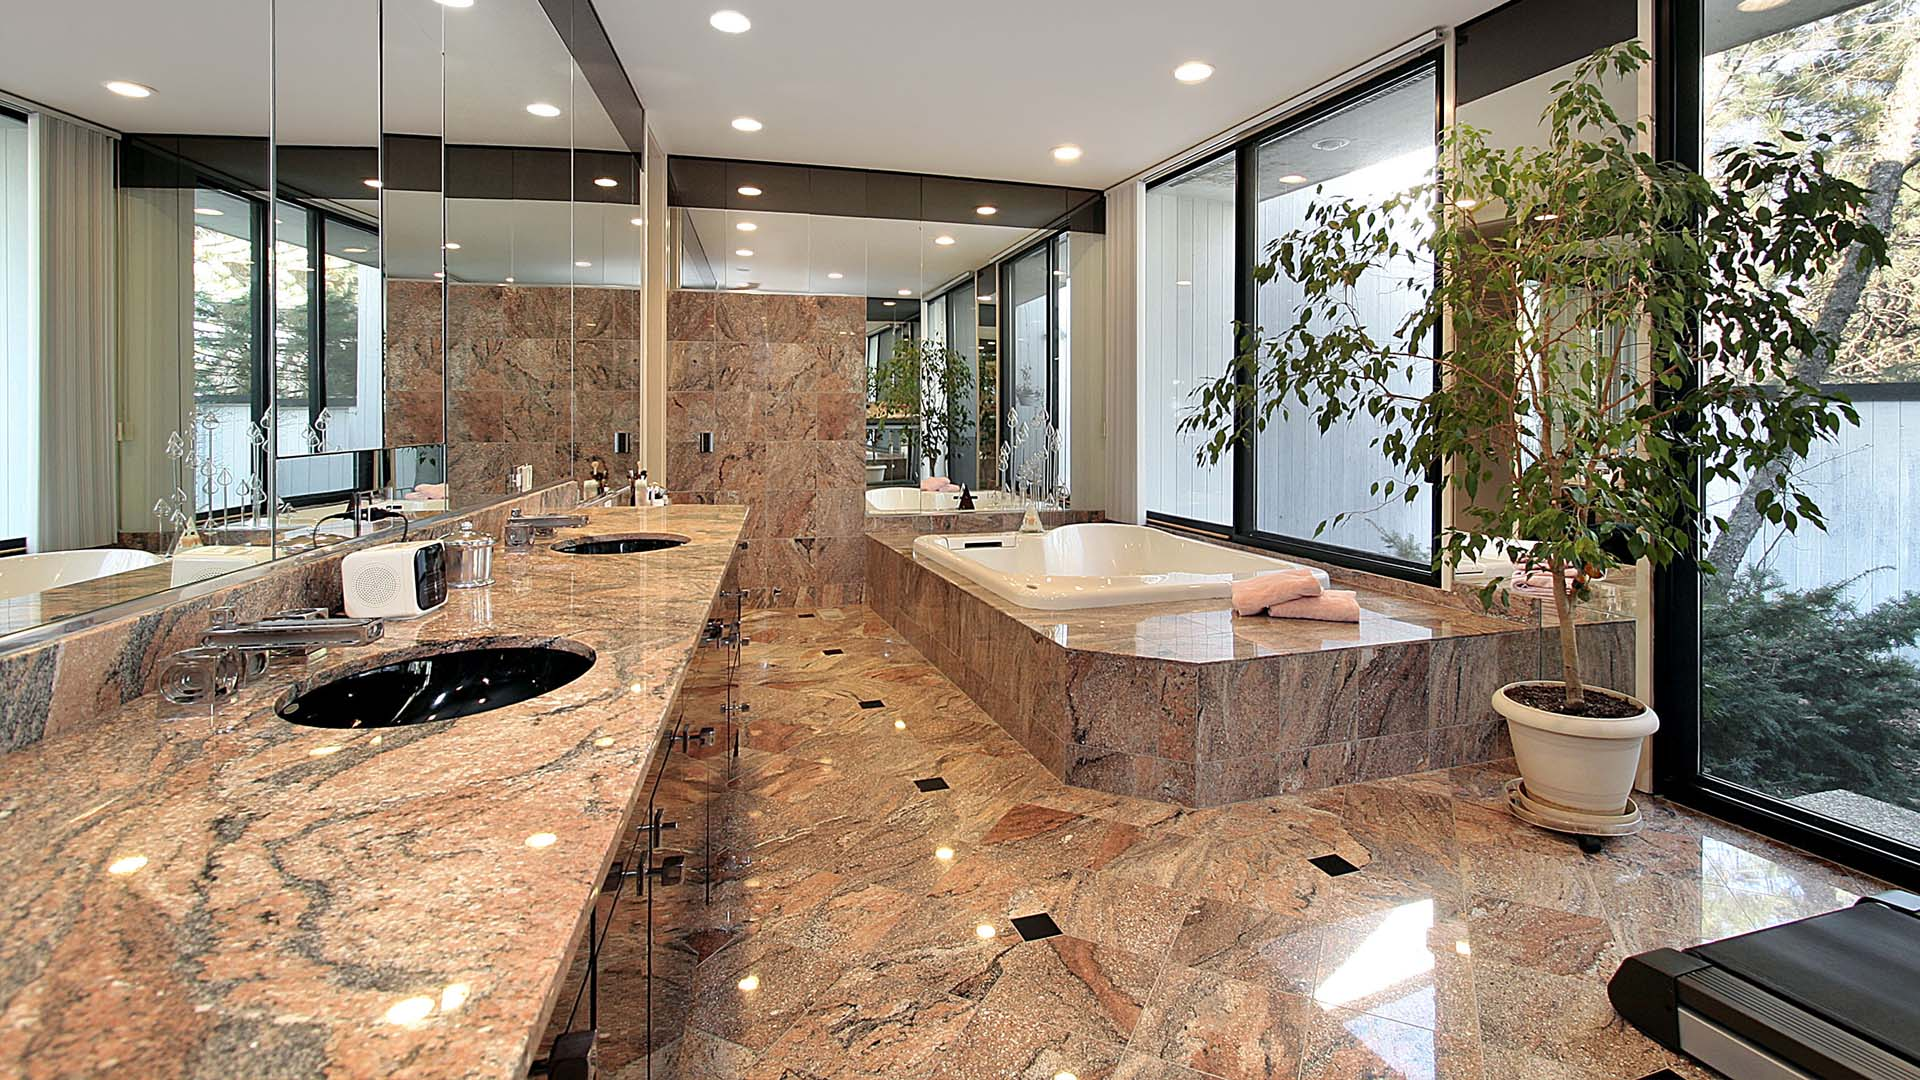 Manhattan Remodeling Renovations General Contractor And Remodeling - Bathroom renovation staten island ny